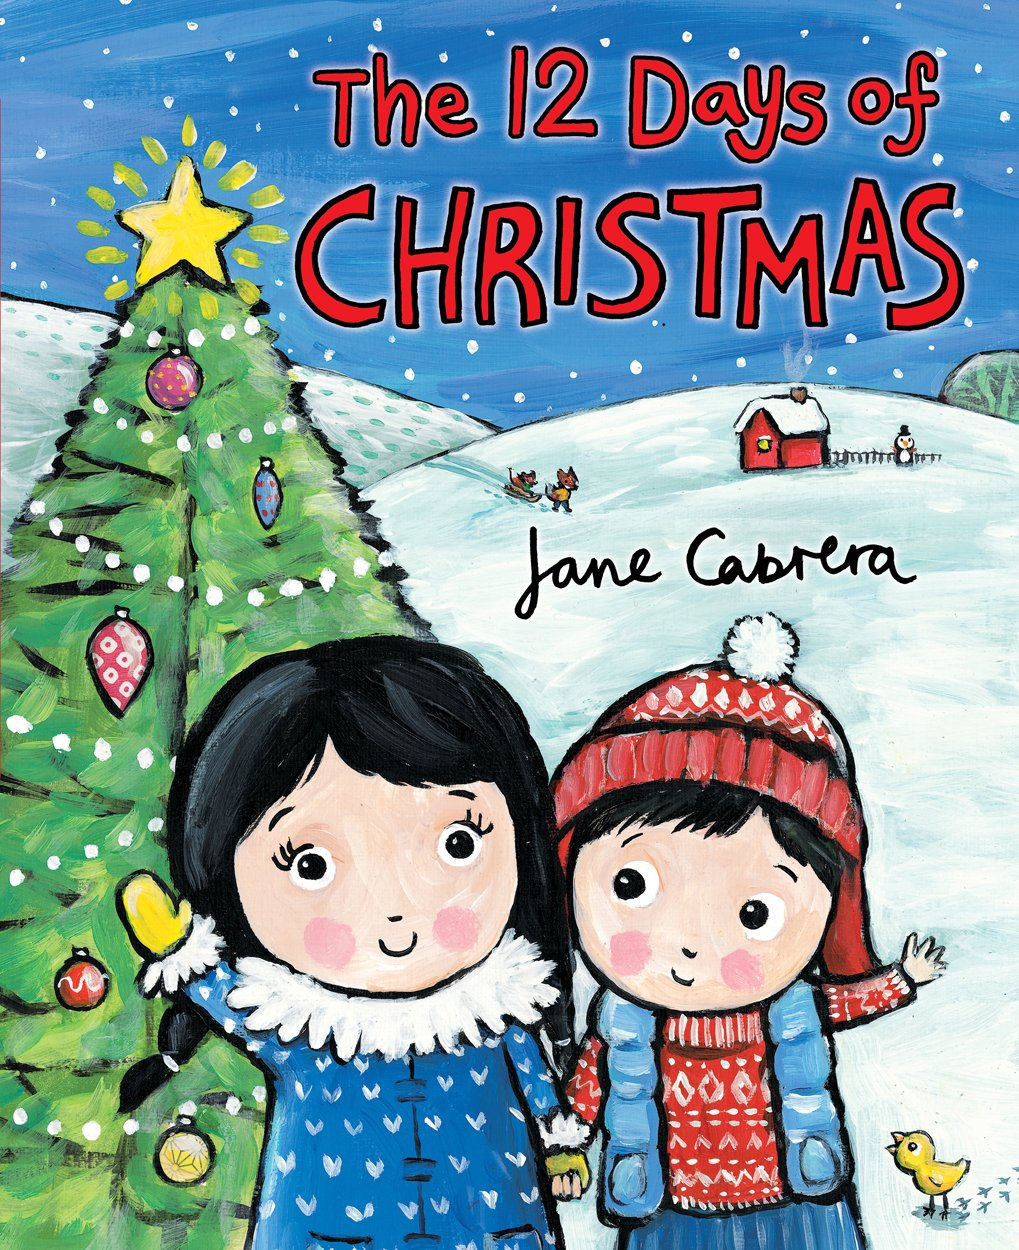 amazoncom the 12 days of christmas 9780823431717 jane cabrera books - 12 Days If Christmas